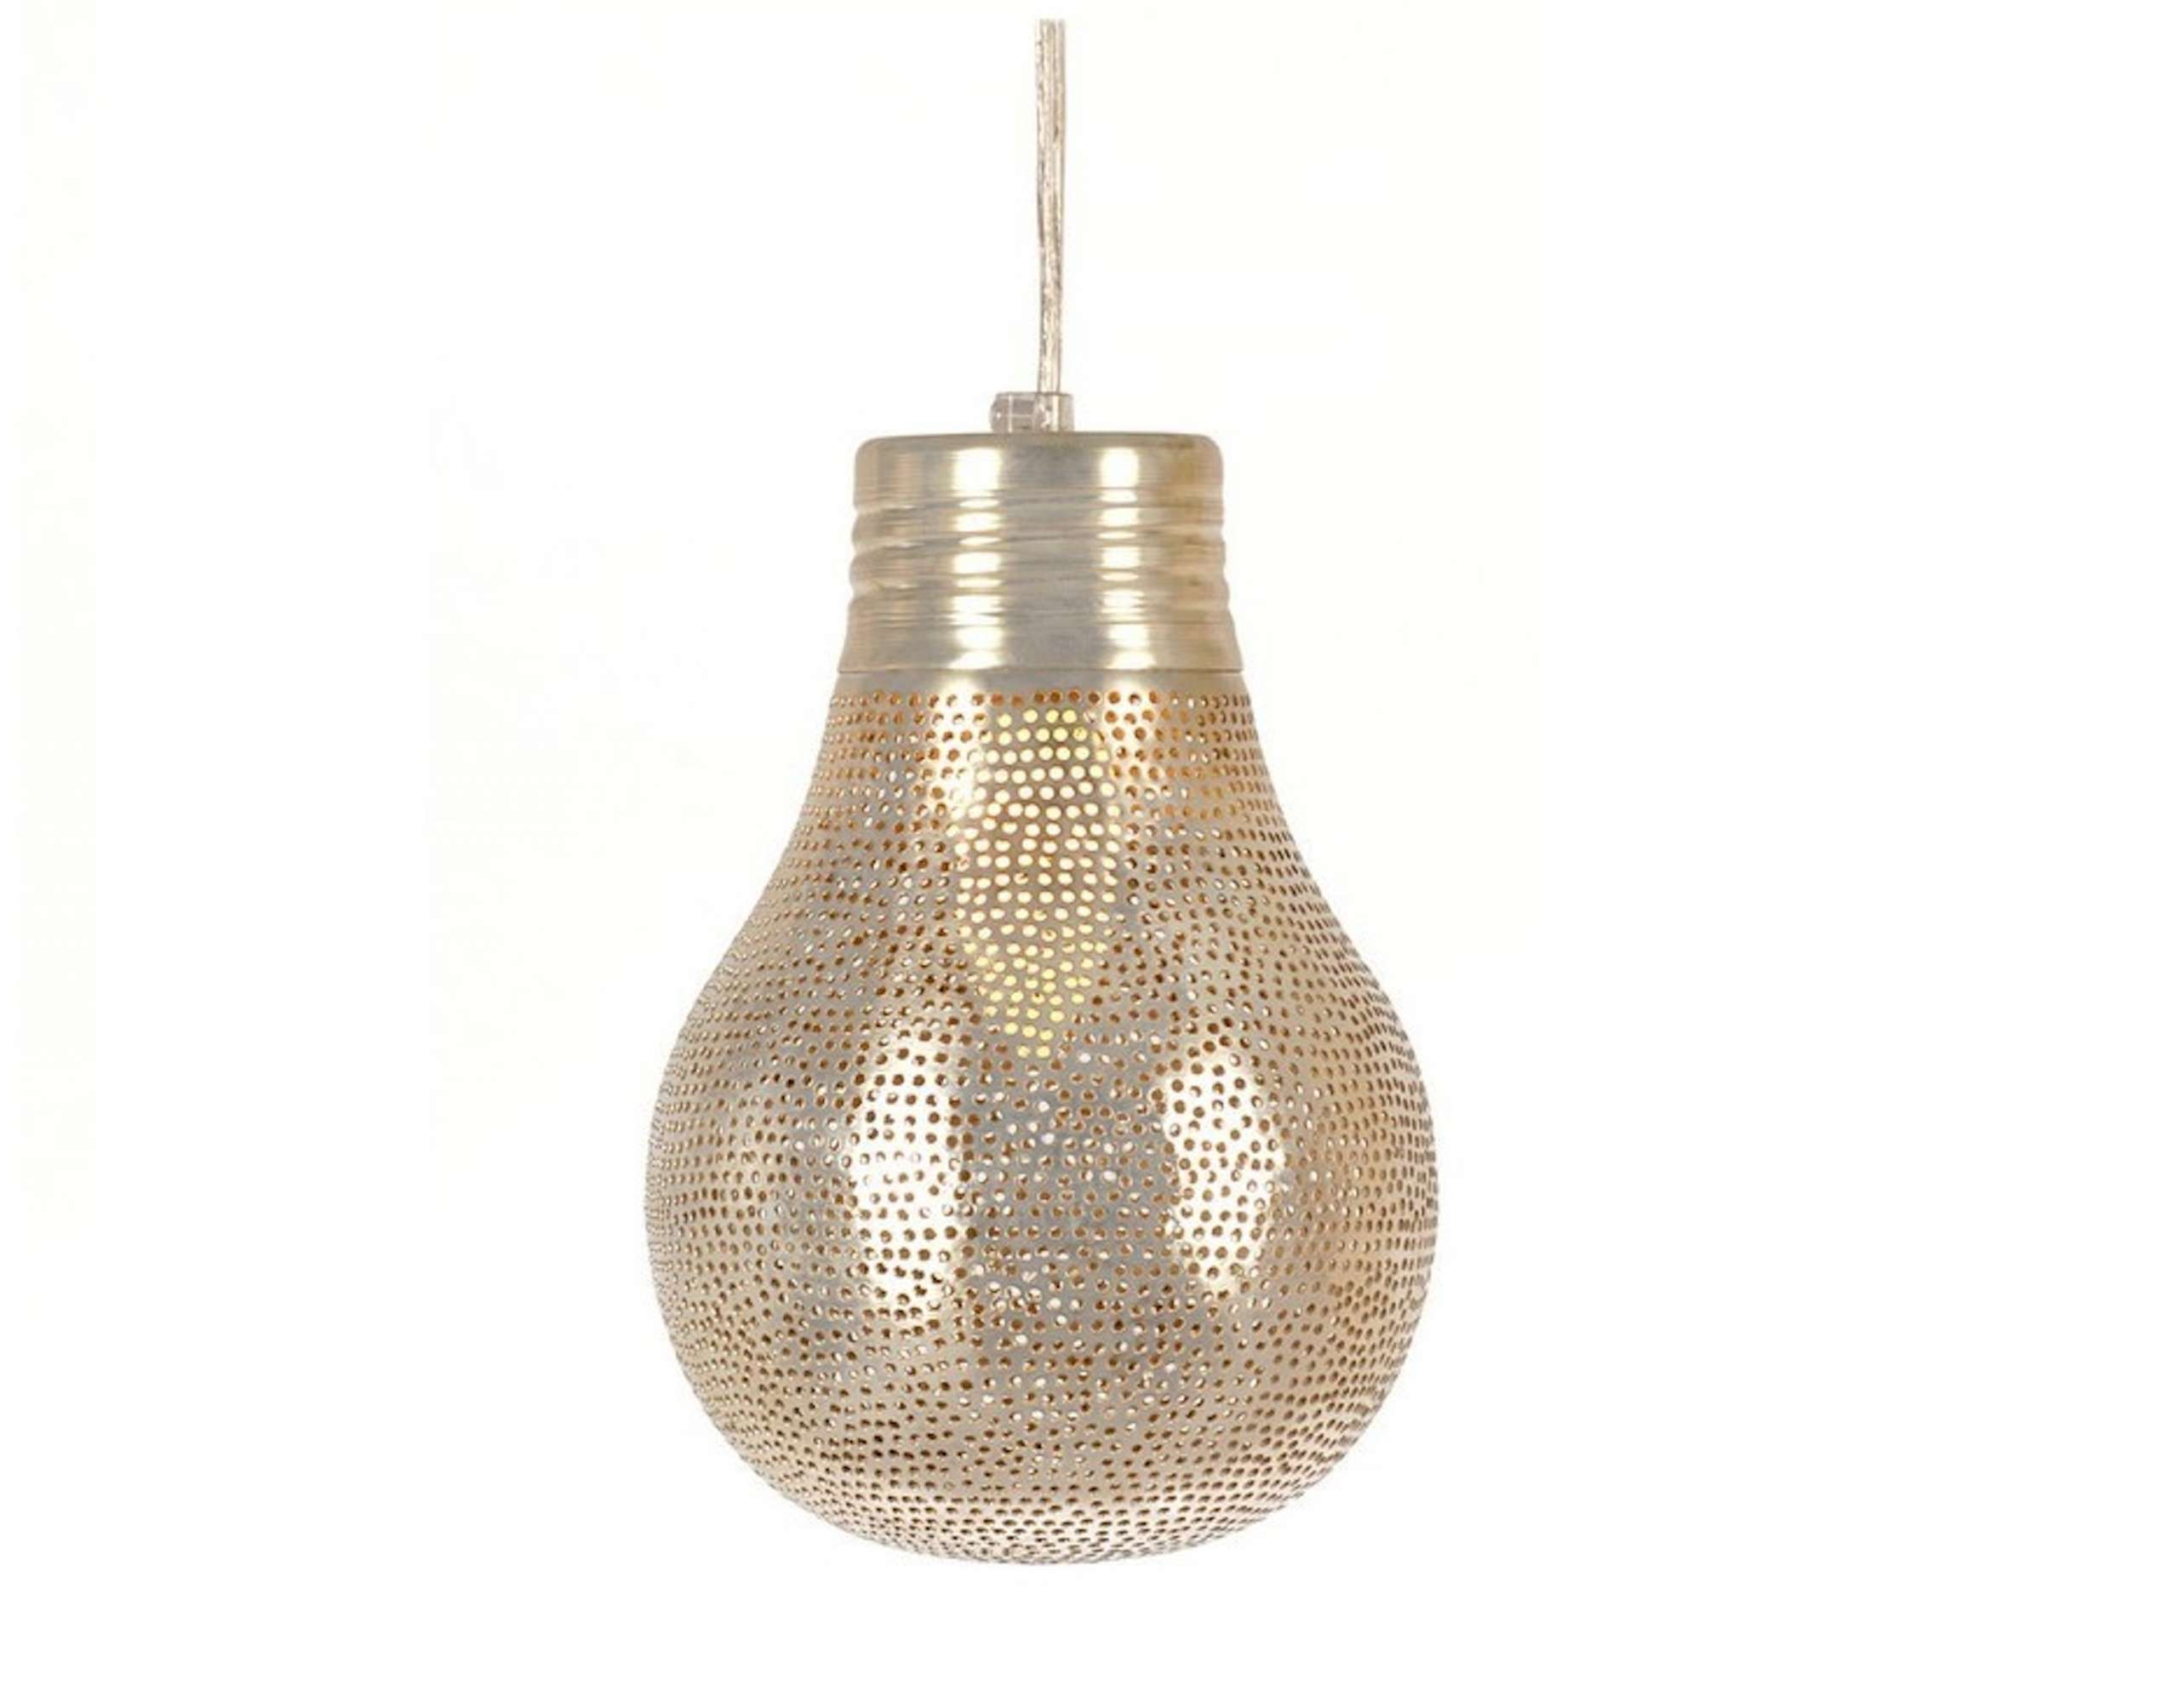 Zenza zenza lightbulb pendant light | interior lighting | home decor